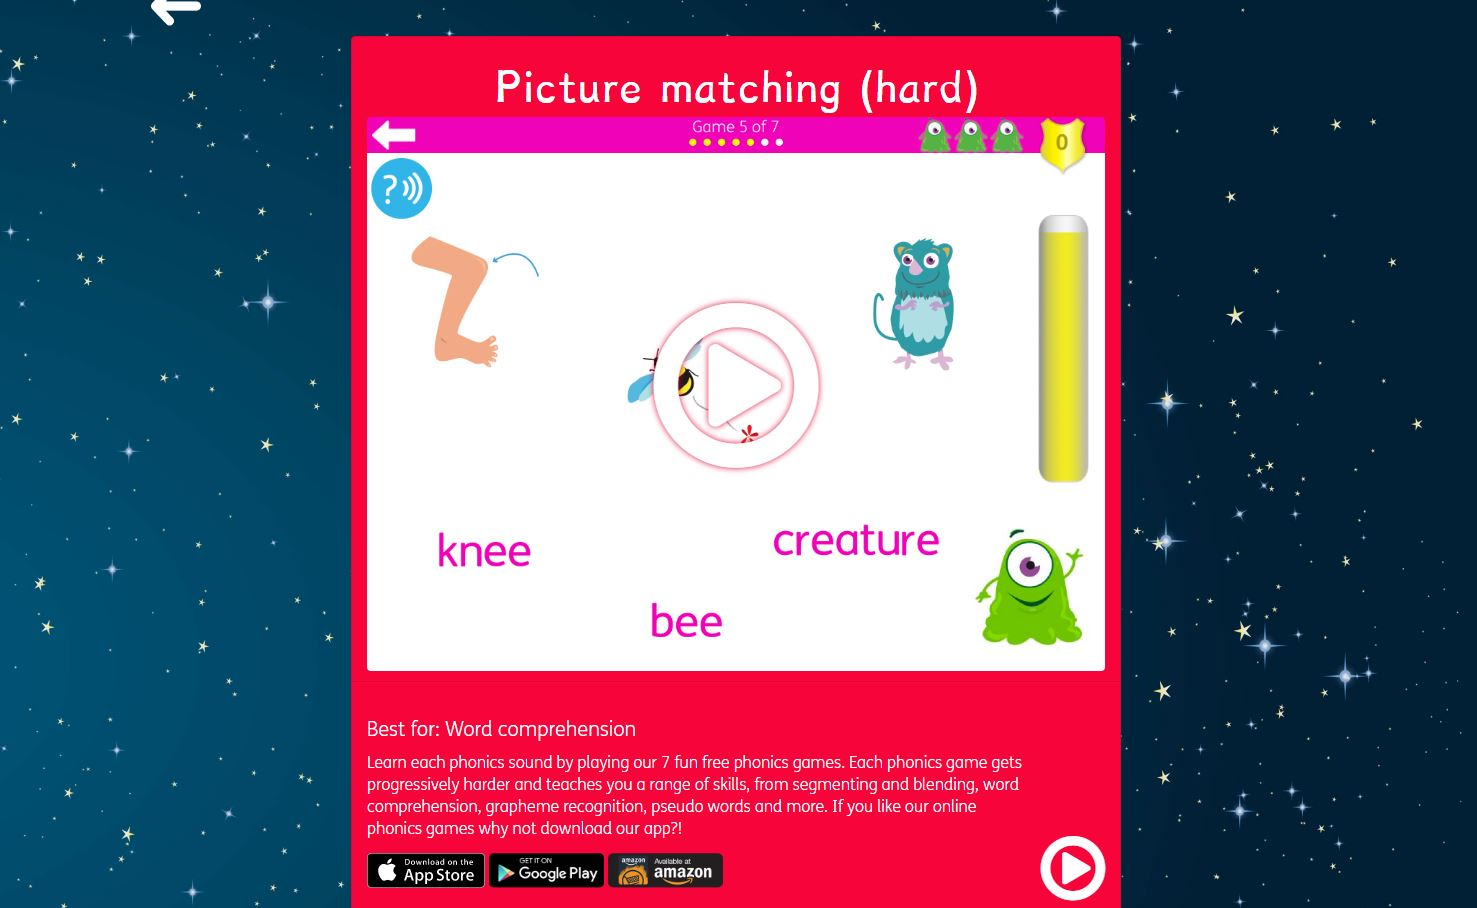 - 10 Best Free Online Phonics Games Free Learn To Read Games